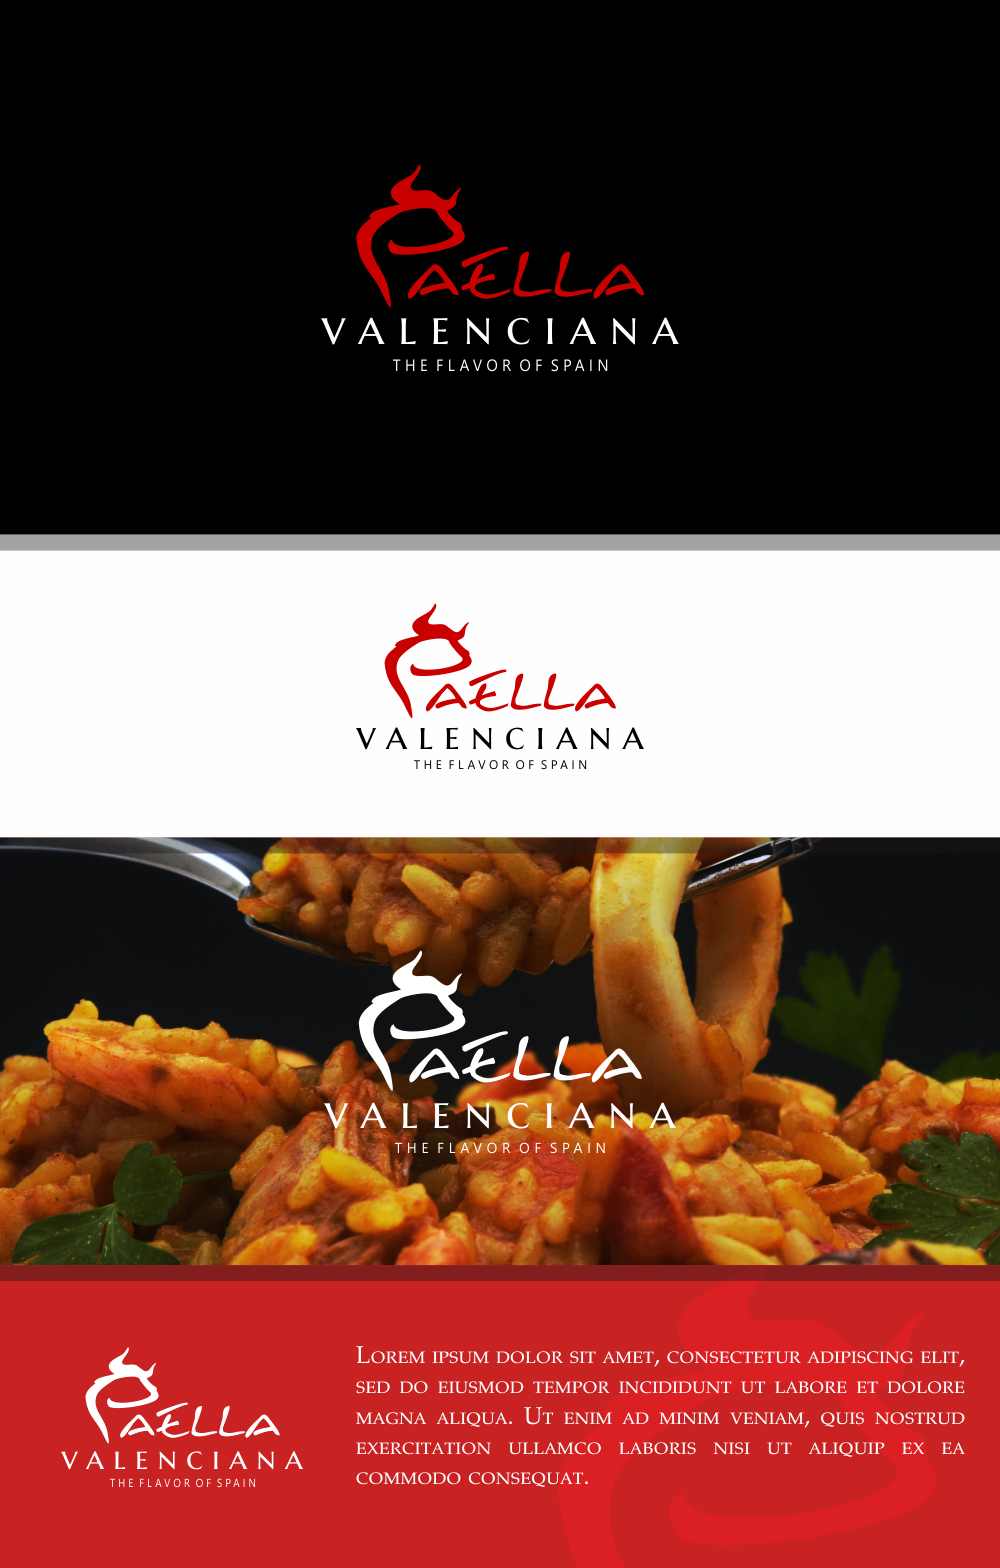 Create a Classy Spanish Bull for my PAELLA catering company!